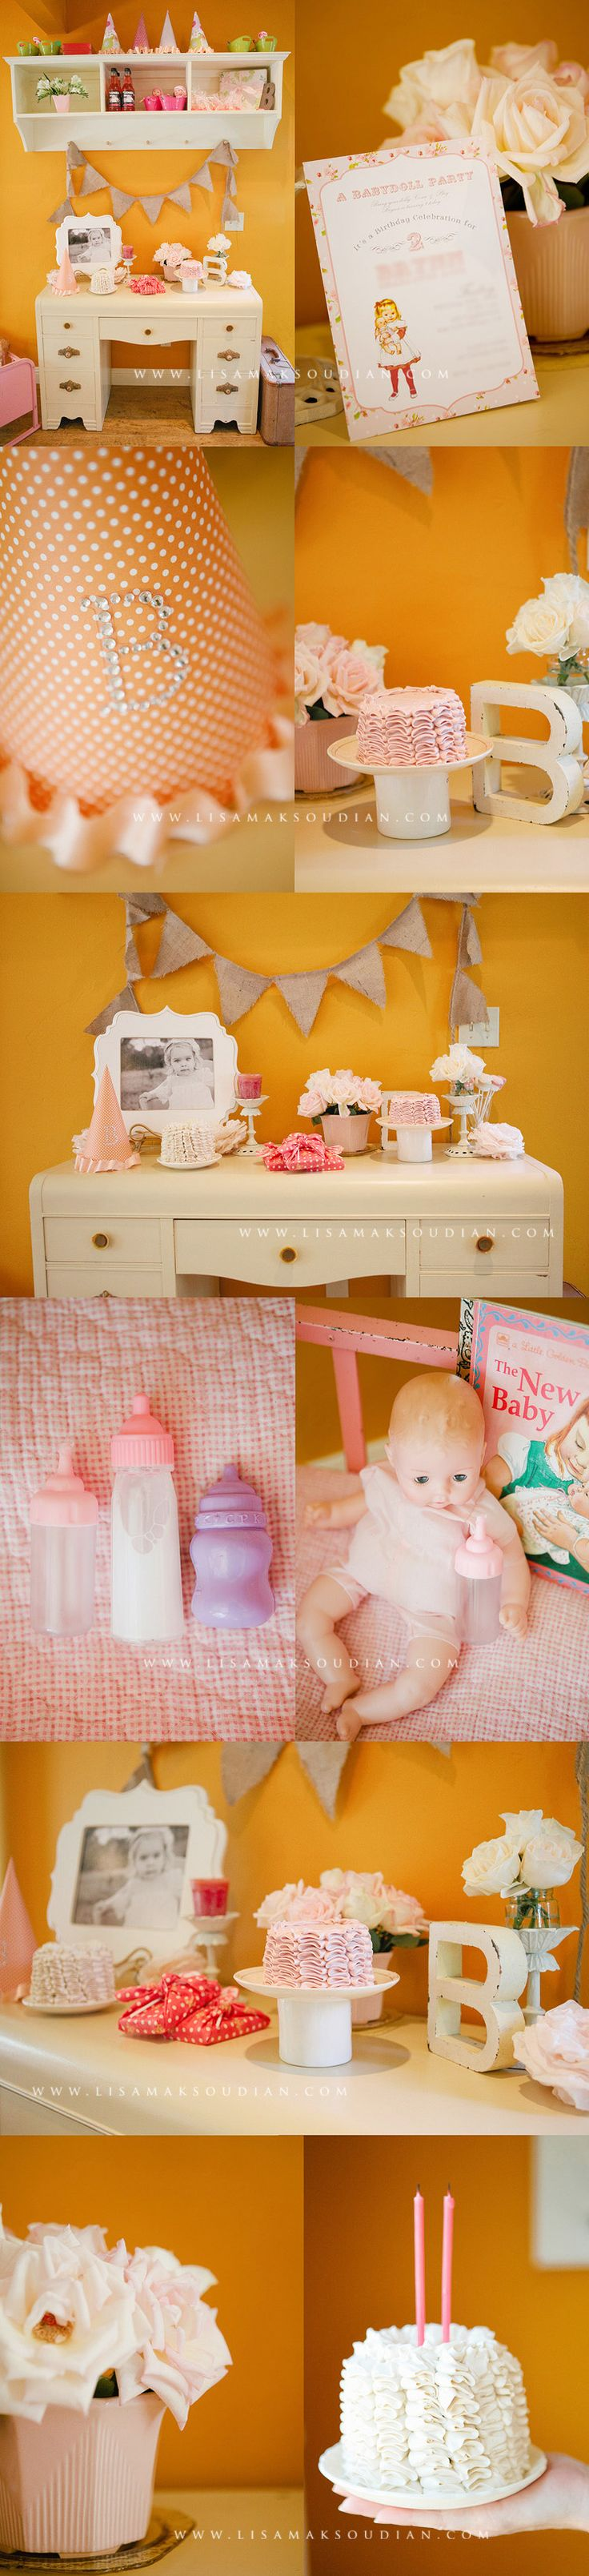 23 best Baby doll stuff images on Pinterest Doll party Girl